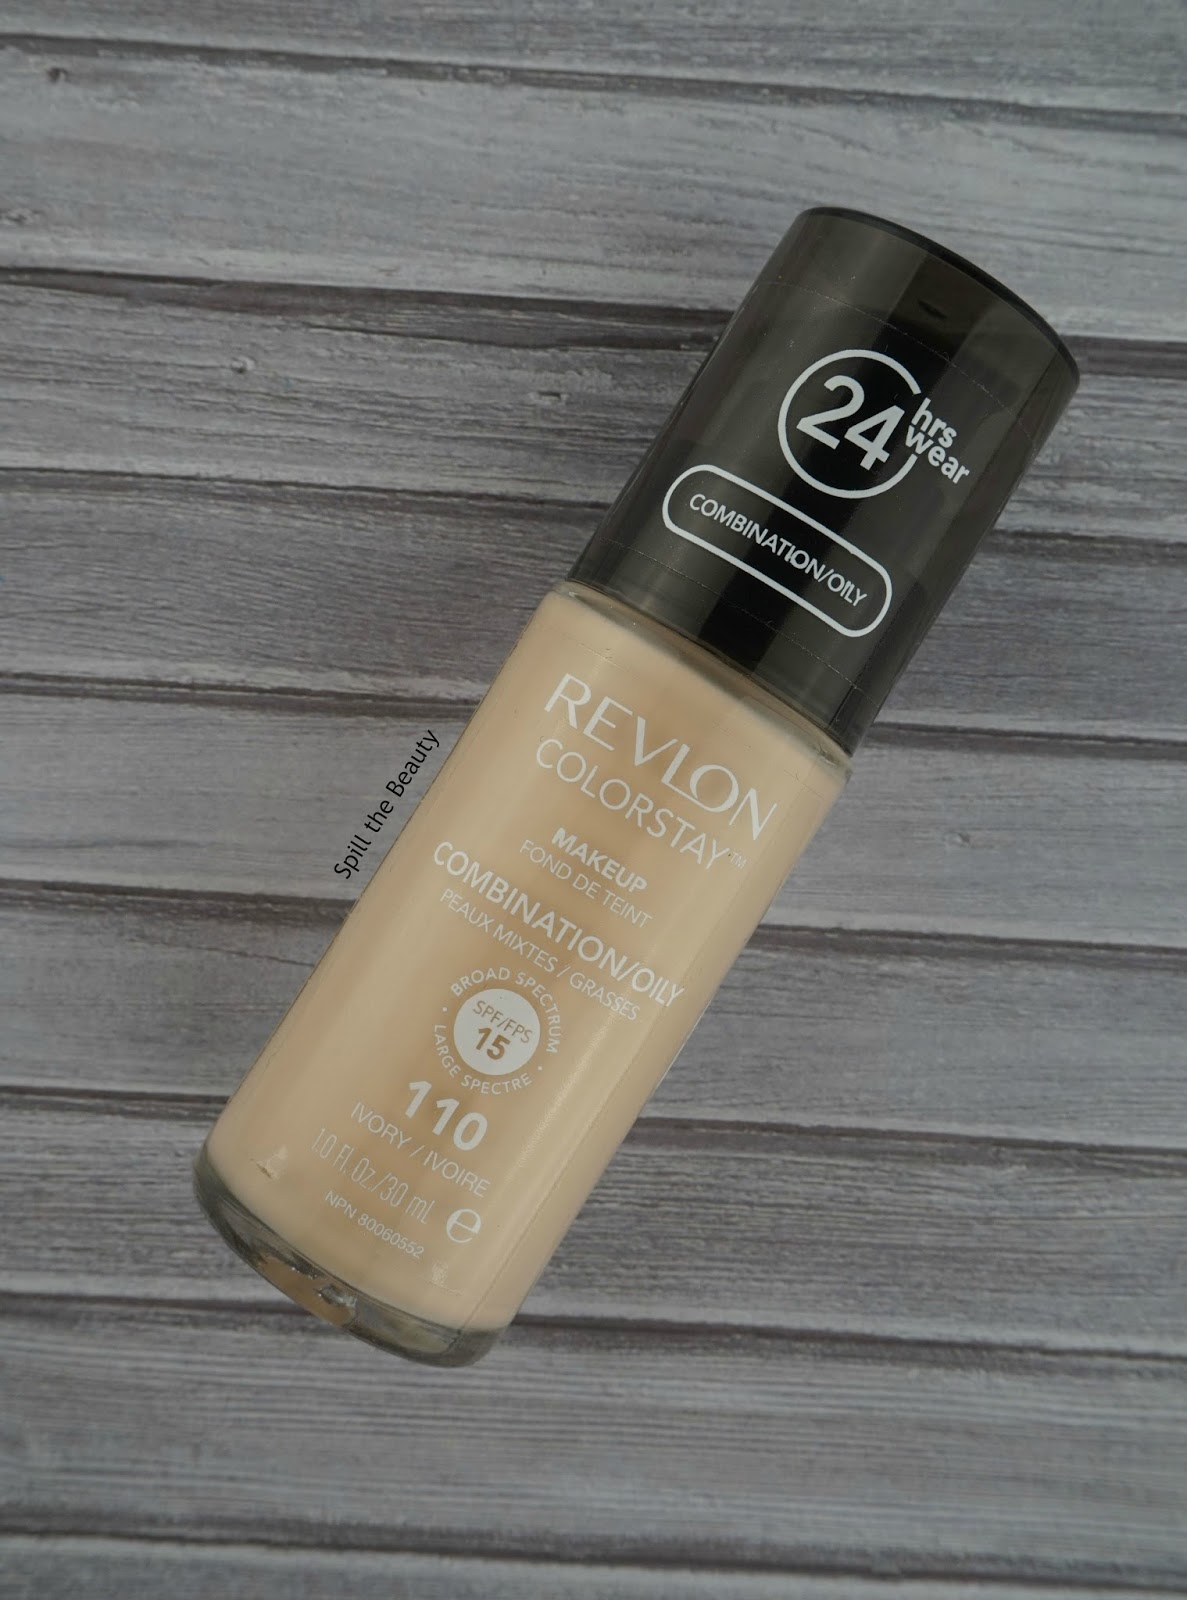 Revlon Colorstay Foundation – Review, Swatches, Before & After + #ColorStayAllDay Event, Hosted by Gigi Gorgeous